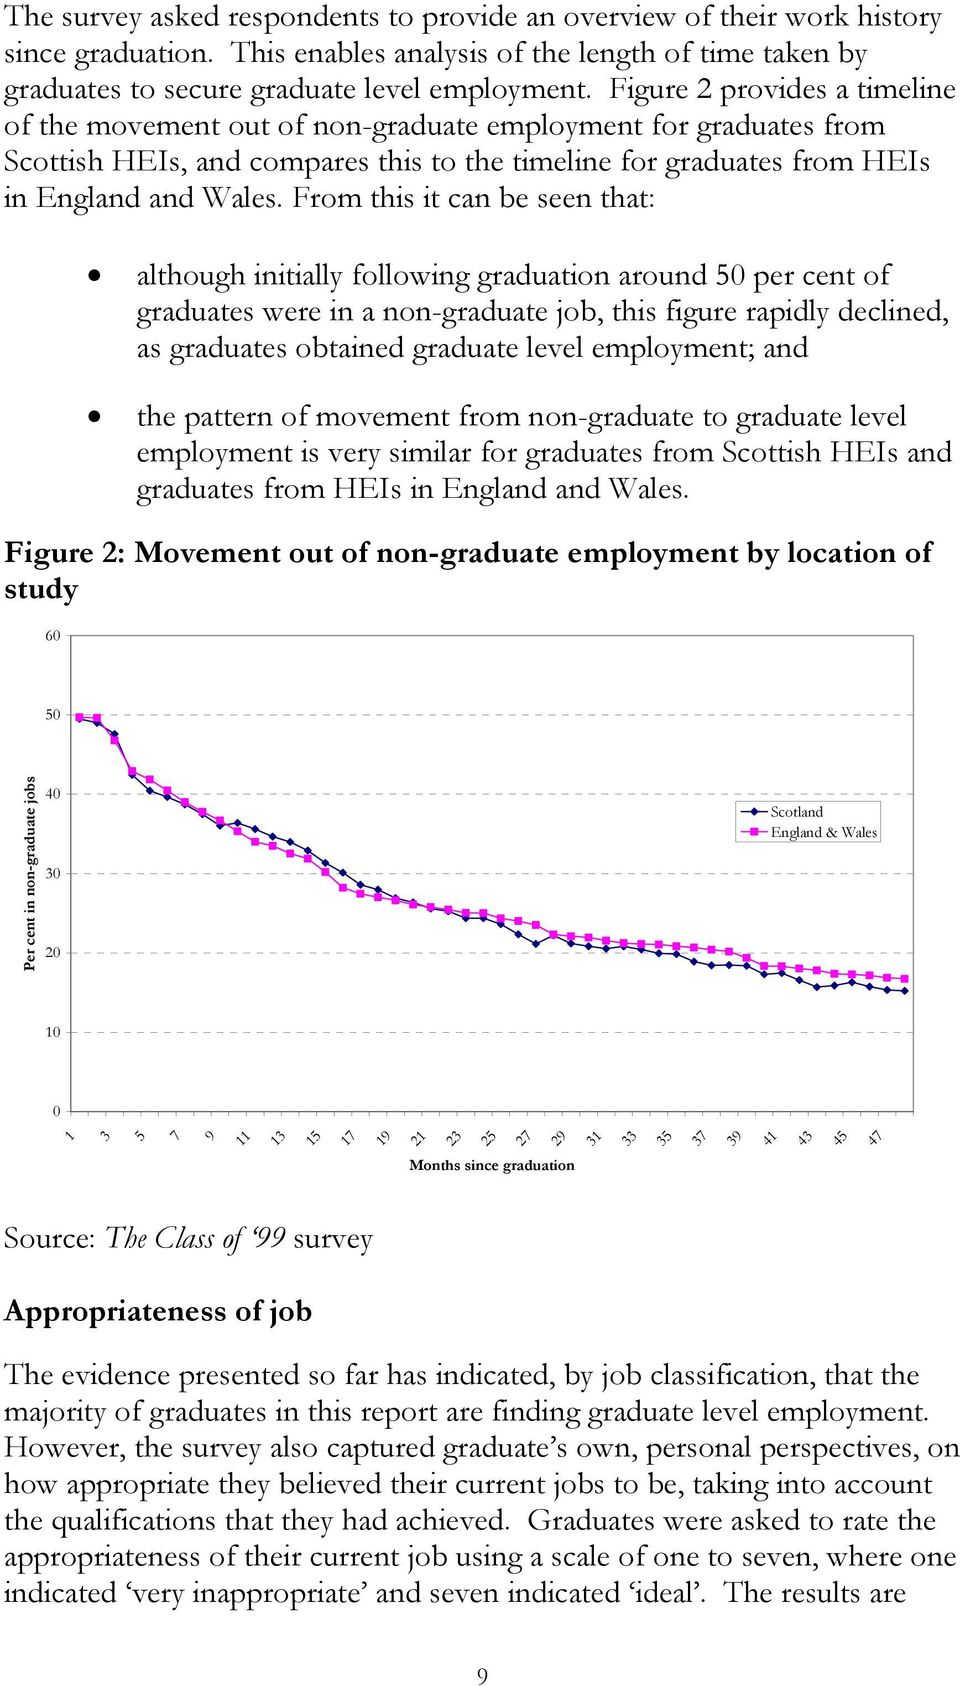 From this it can be seen that: although initially following graduation around 50 per cent of graduates were in a non-graduate job, this figure rapidly declined, as graduates obtained graduate level